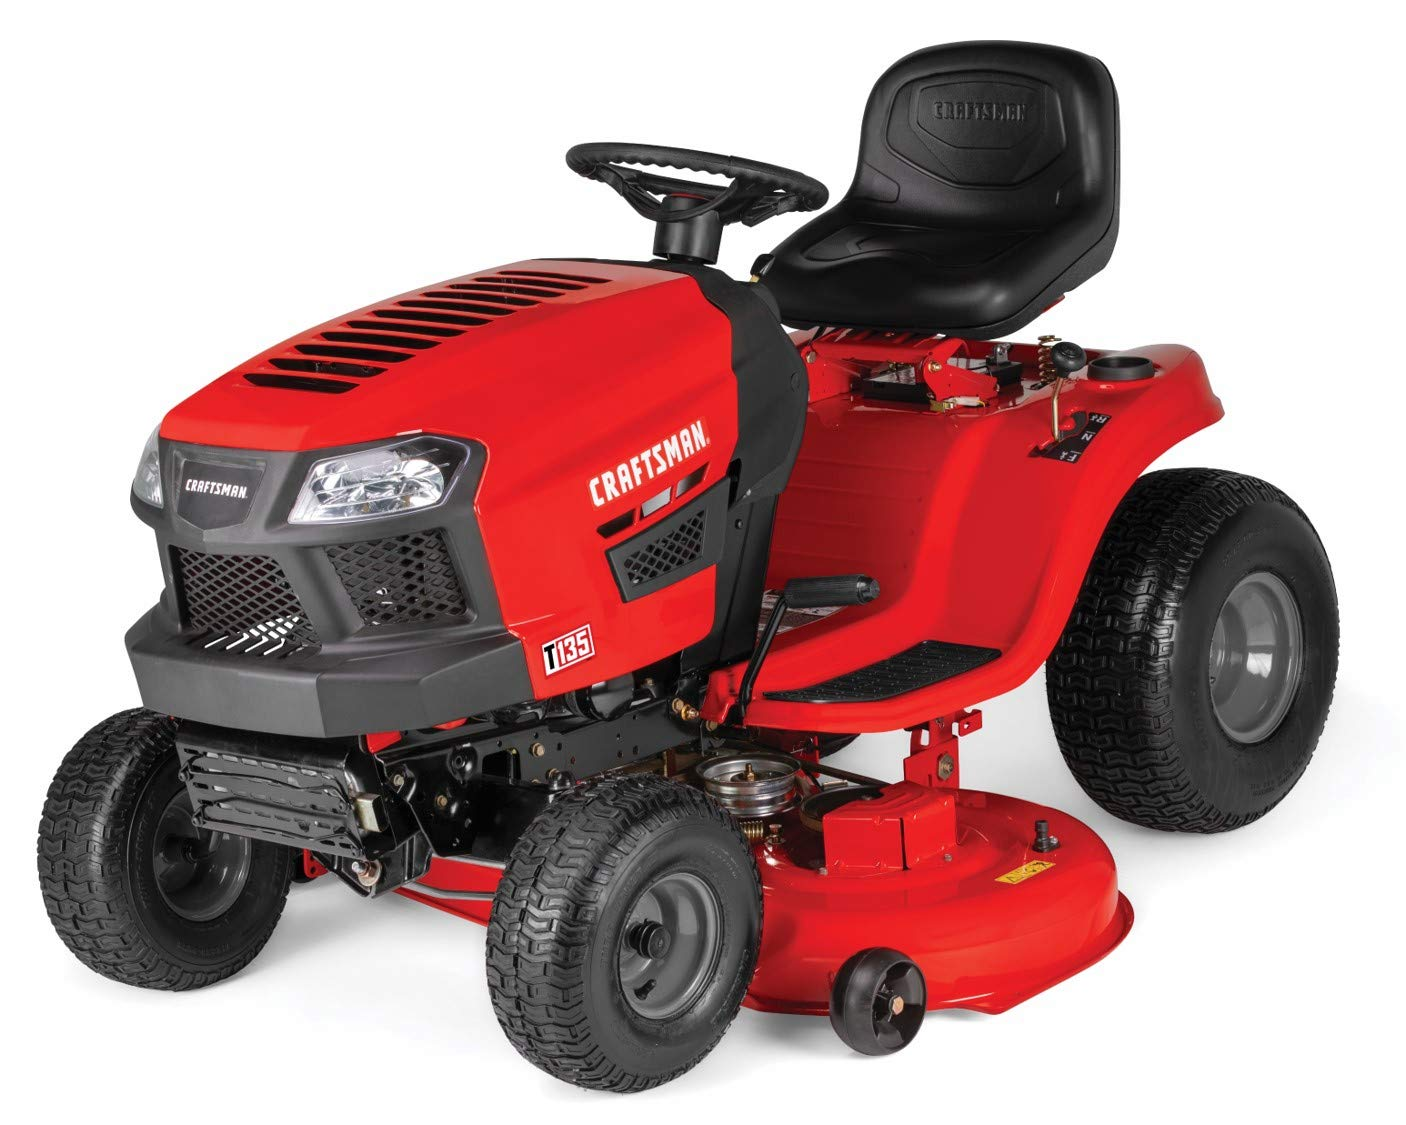 The Best Riding Lawn Mowers Of 2020 2021 Reviews